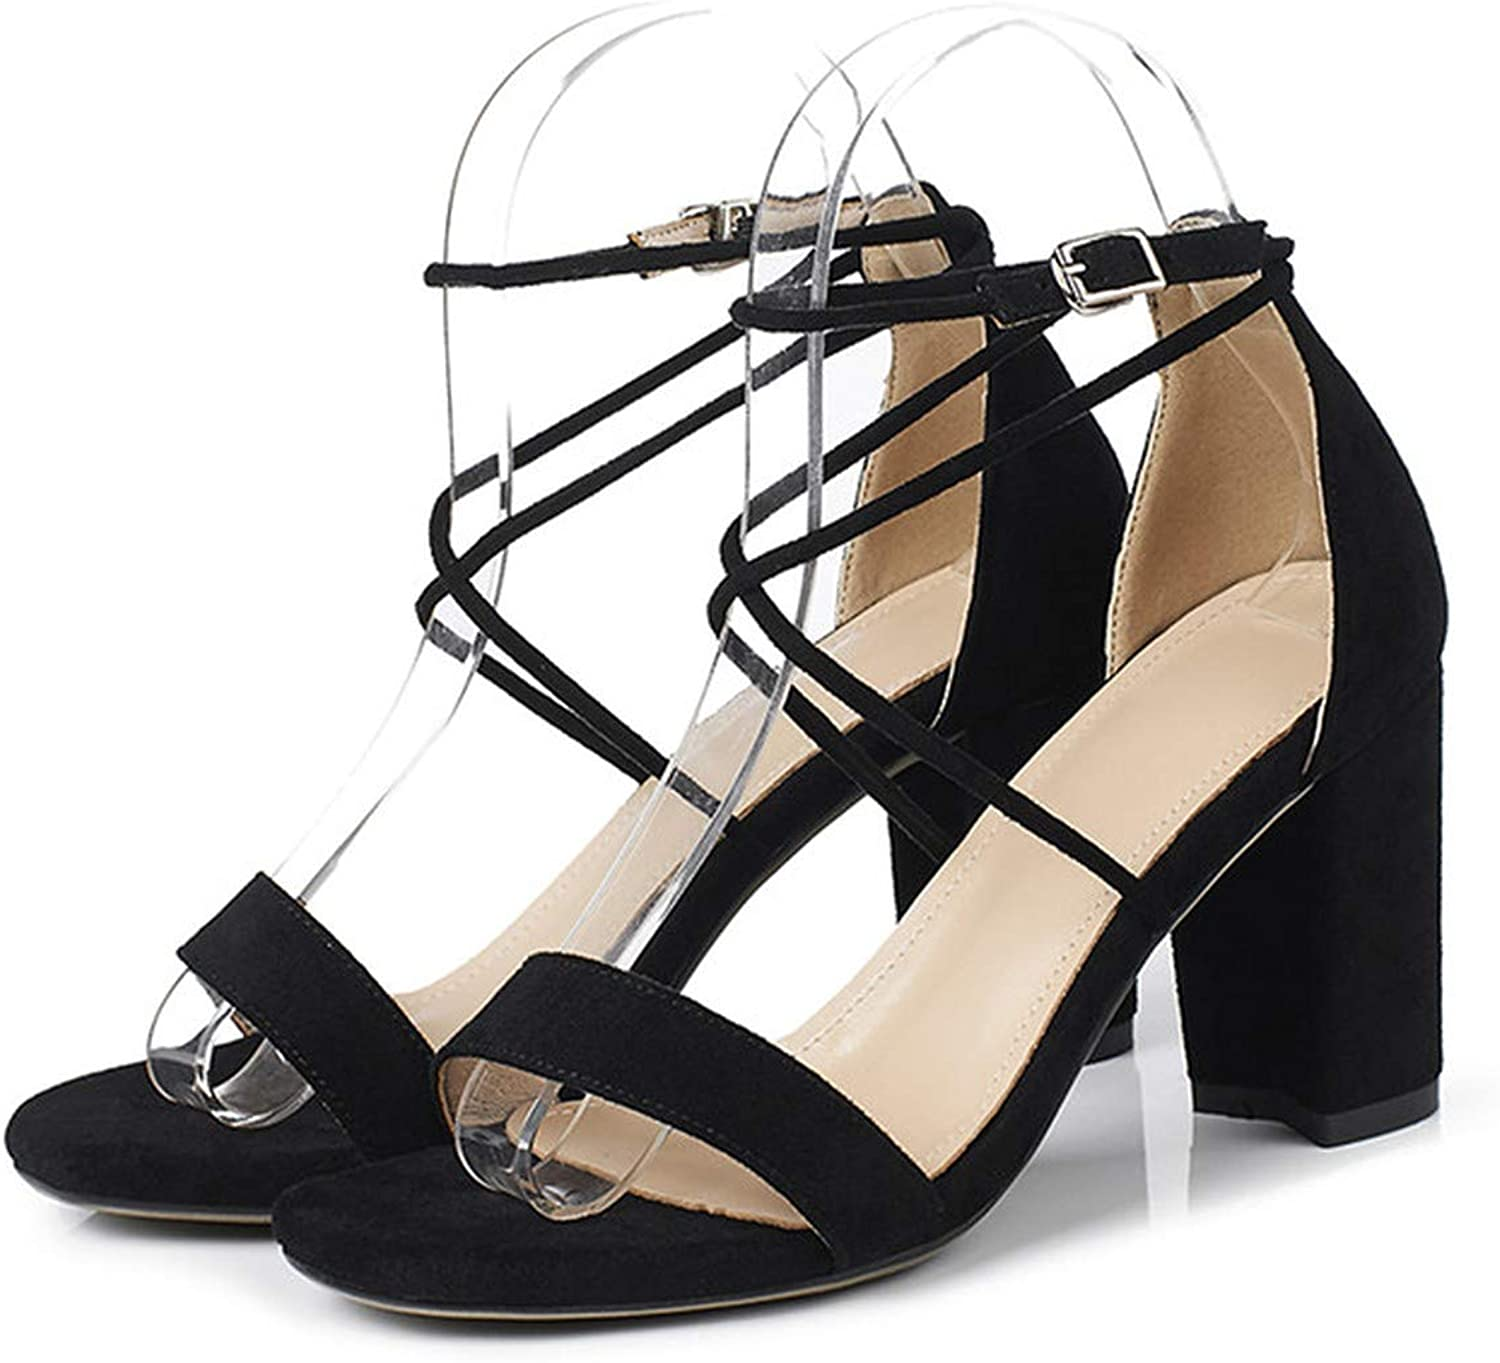 Summer Sandals Women shoes Cross-Tied Block High Heels shoes Sexy Buckle Open Toe Party Sandals,Black,8.5